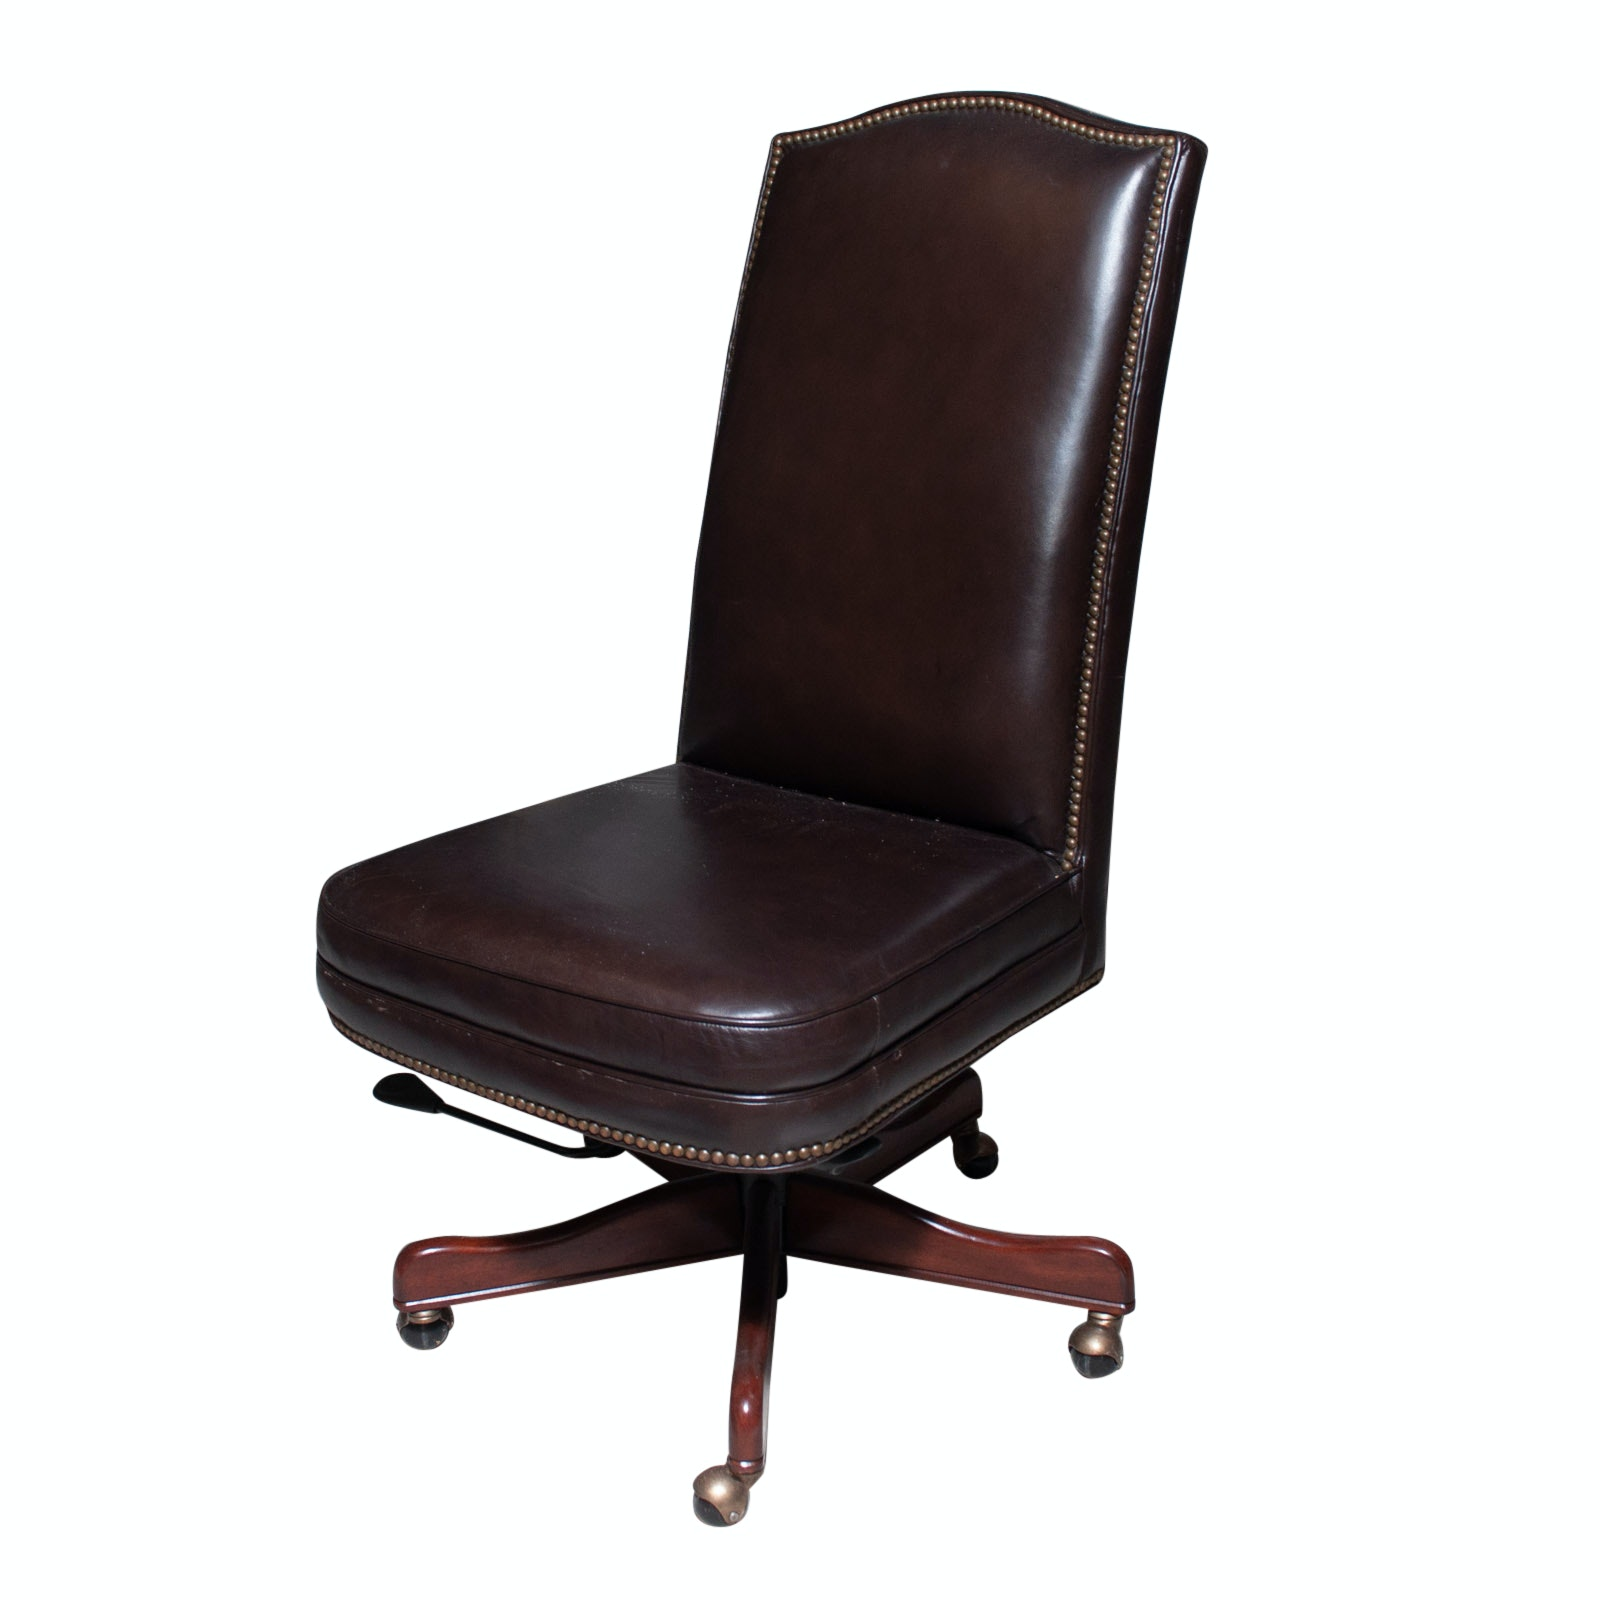 Seven Seas Brown Leather Desk Chair